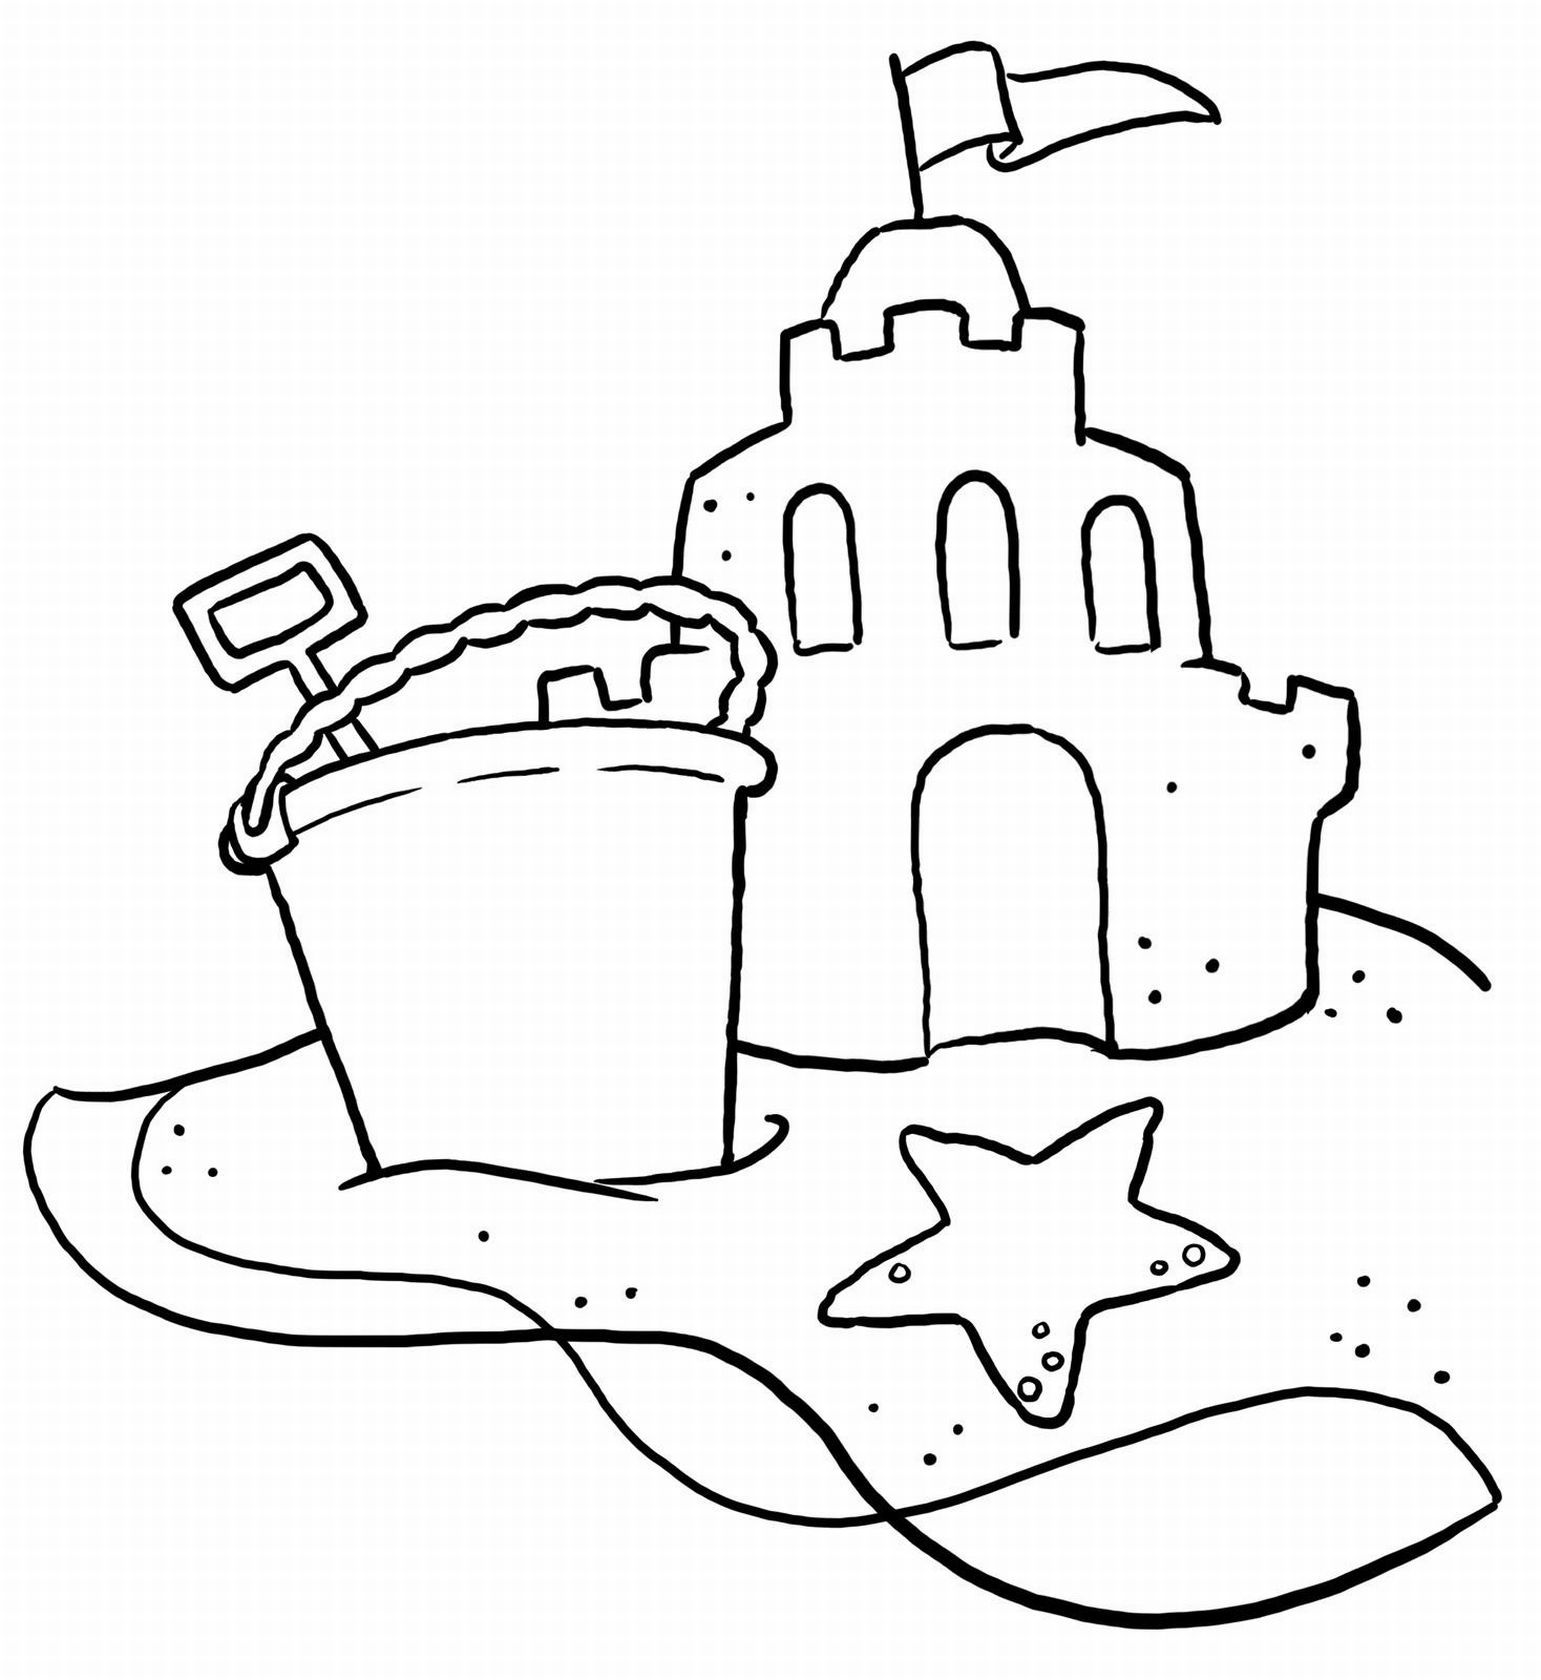 Colouring sheets to colour - Beach Coloring Pages 20 Free Printable Sheets To Color